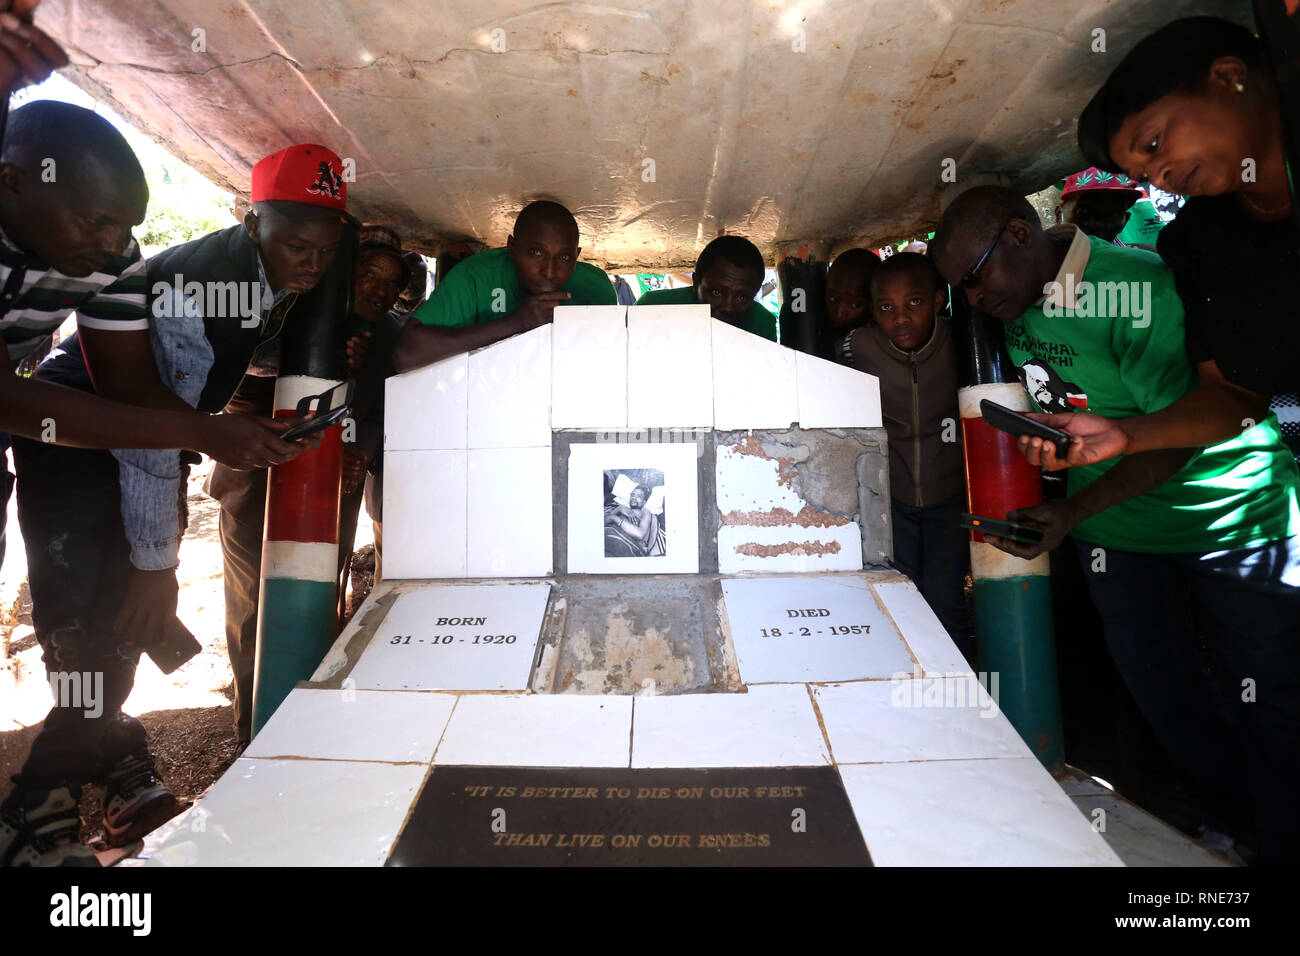 Nyeri, Kenya. 18th Feb, 2019. People are seen at Kenya's freedom fighter Dedan Kimathi's shrine during the commemoration.Kenya's freedom fighters against British colonial rule called ''˜Mau Mau' commemorated the execution of their leader Dedan Kimathi on February 18, 1957. His body was buried at an unknown grave, widow Mukami Kimathi wants his grave disclosed and remains exhumed for a decent burial. Credit: Billy Mutai/SOPA Images/ZUMA Wire/Alamy Live News - Stock Image